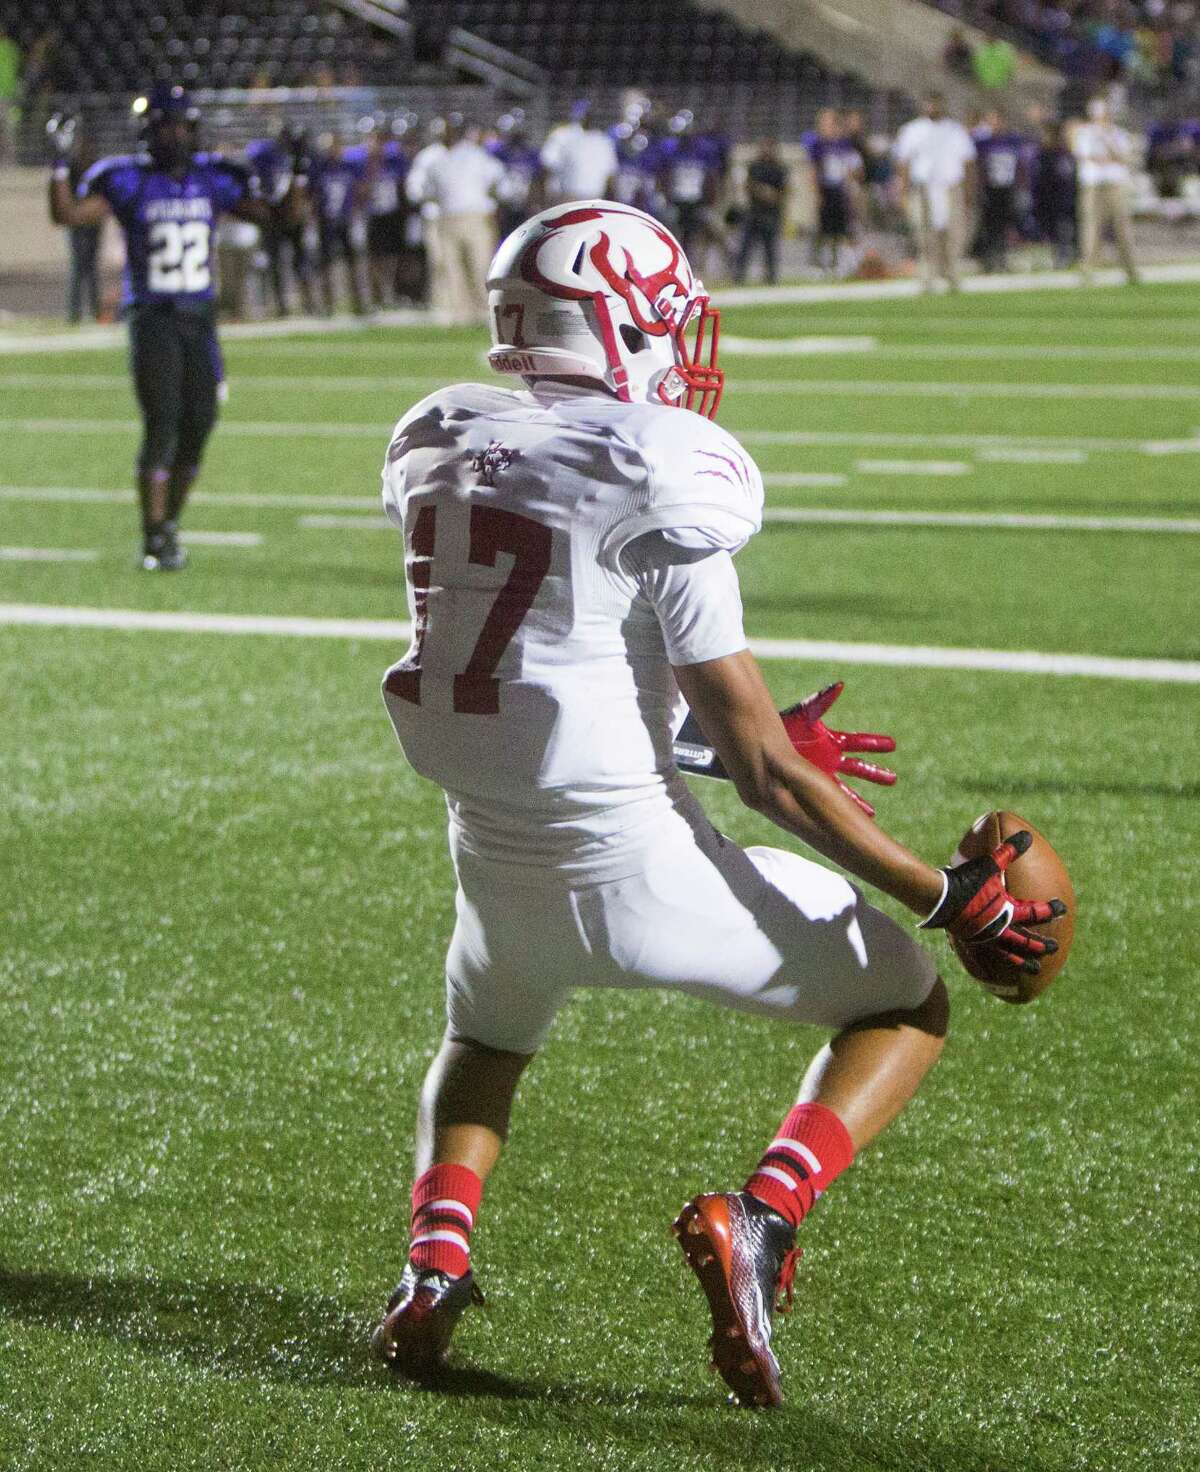 Crosby's Shane Hudson drops a pass in the end zone during the first half of a football game against Humble, at Turner Field, Thursday, Sept. 18, 2014, in Humble.